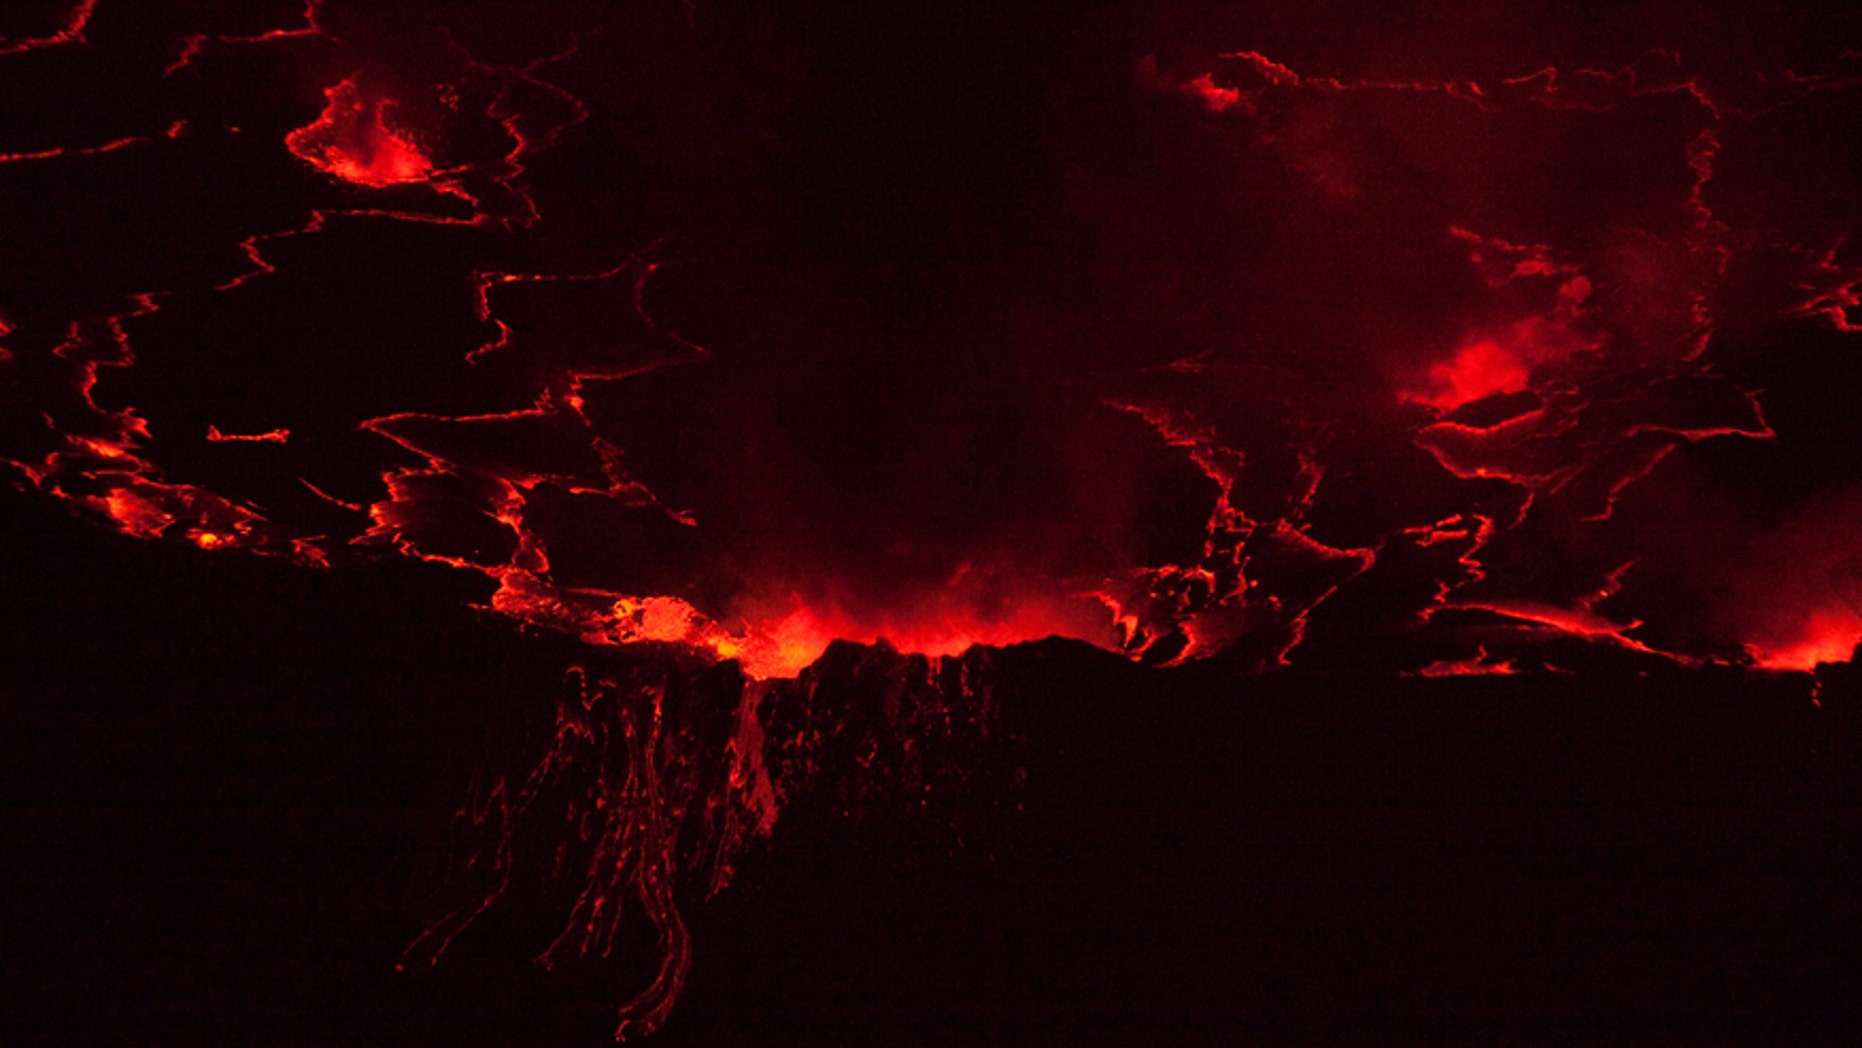 File photo - A lava lake with a diameter of 500 feet glows at night in the crater of Nyiragongo volcano near Goma in eastern Congo, Aug. 30, 2010. (REUTERS/Finbarr O'Reilly)